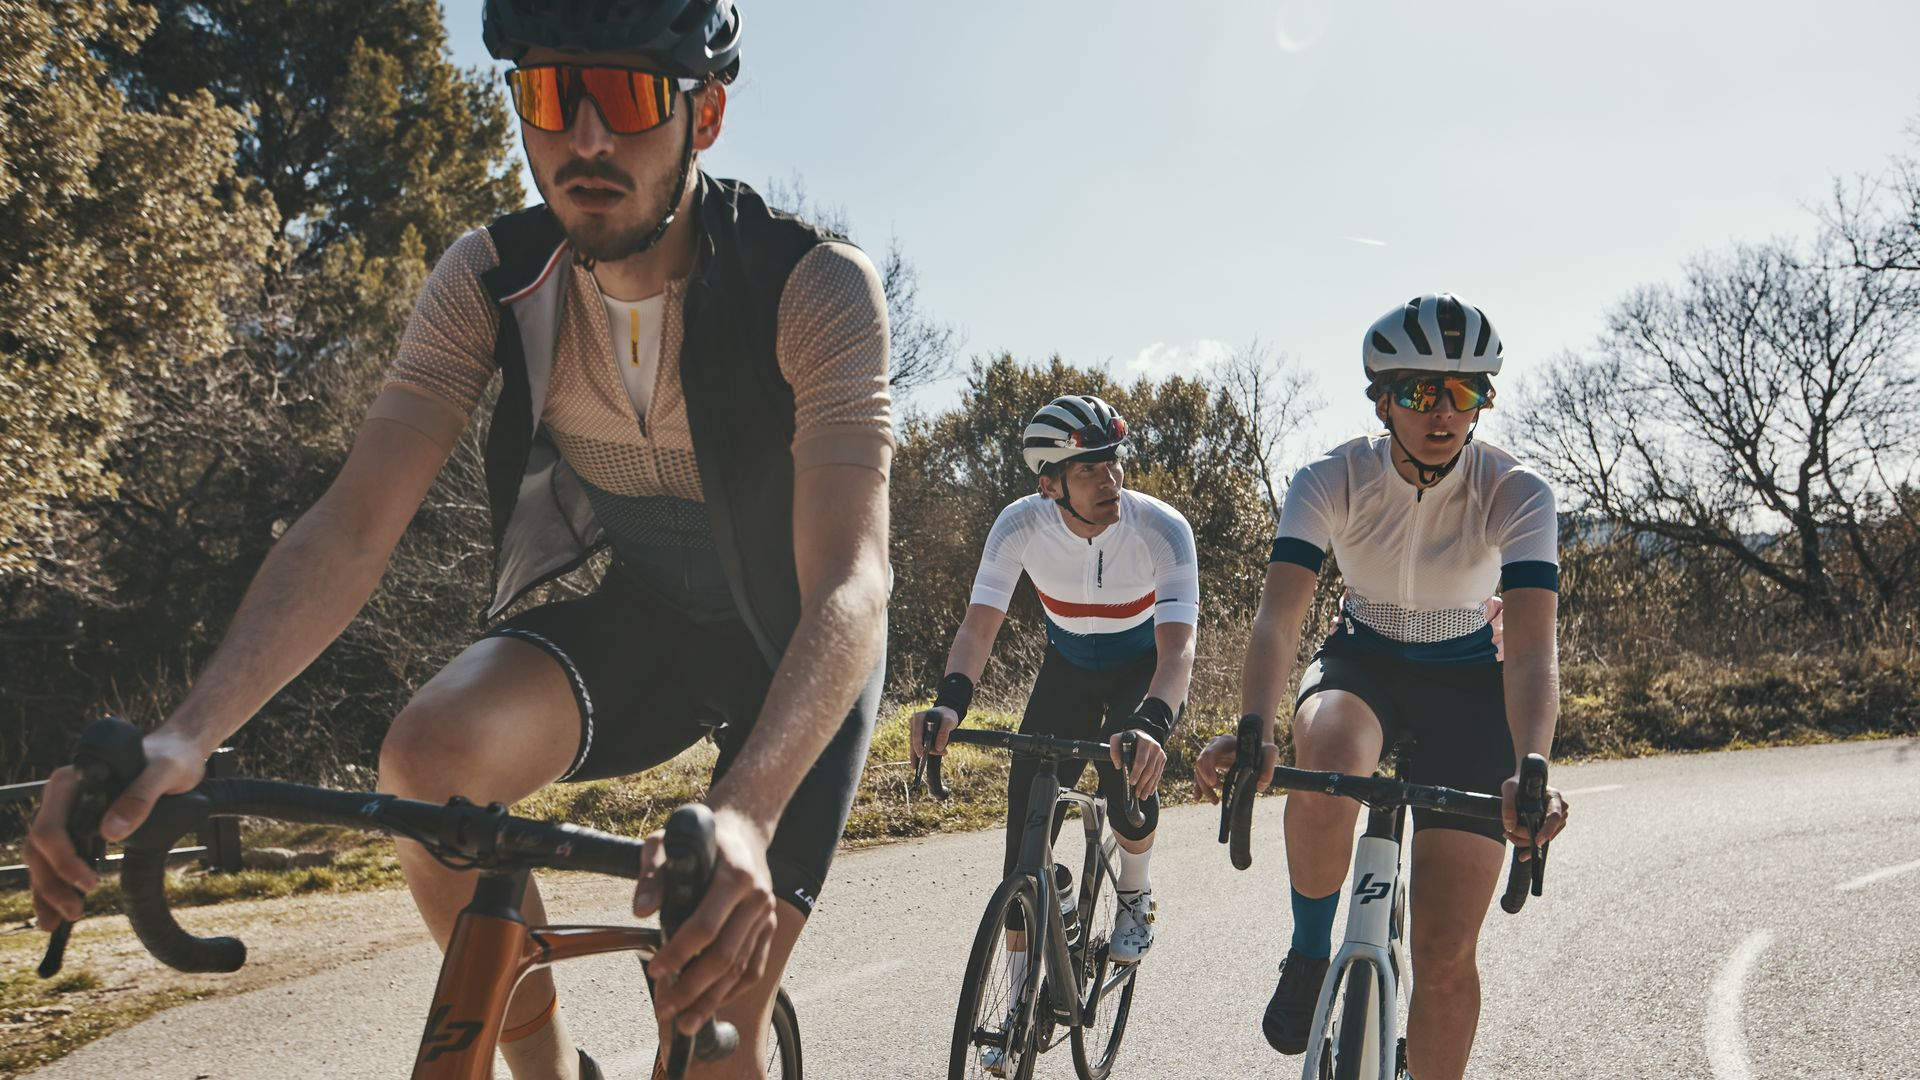 The Pulsium SAT is a versatile bike for all your outings